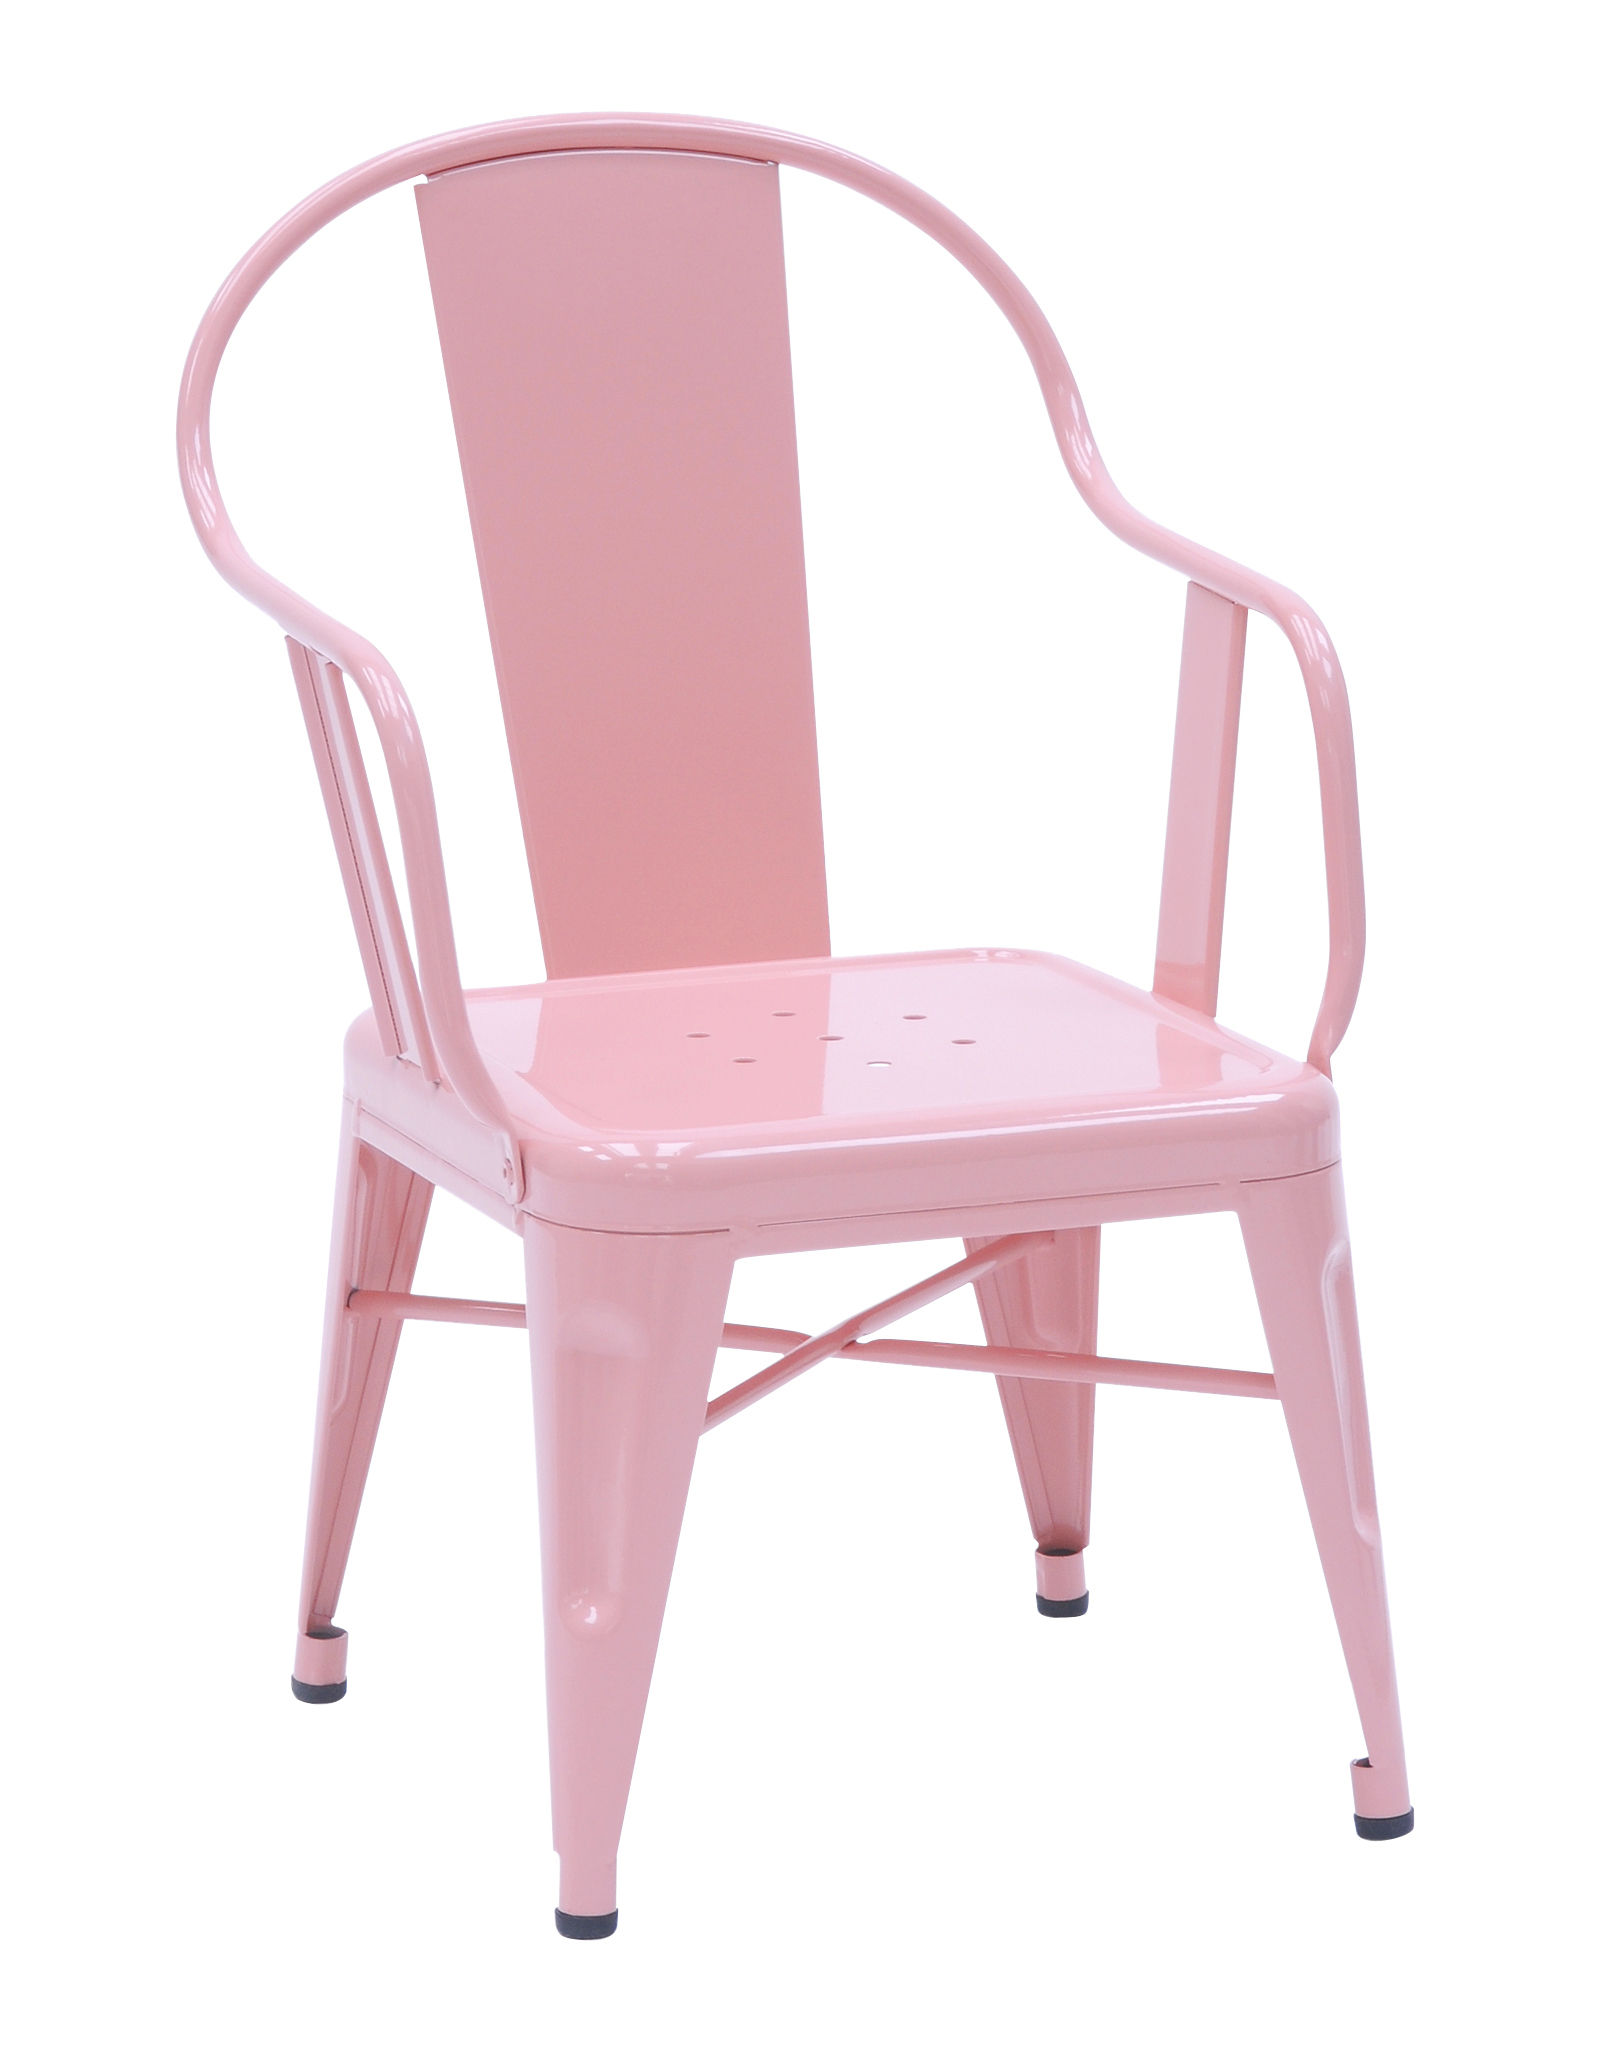 fauteuil enfant mouette acier laqu int rieur rose p le tolix. Black Bedroom Furniture Sets. Home Design Ideas